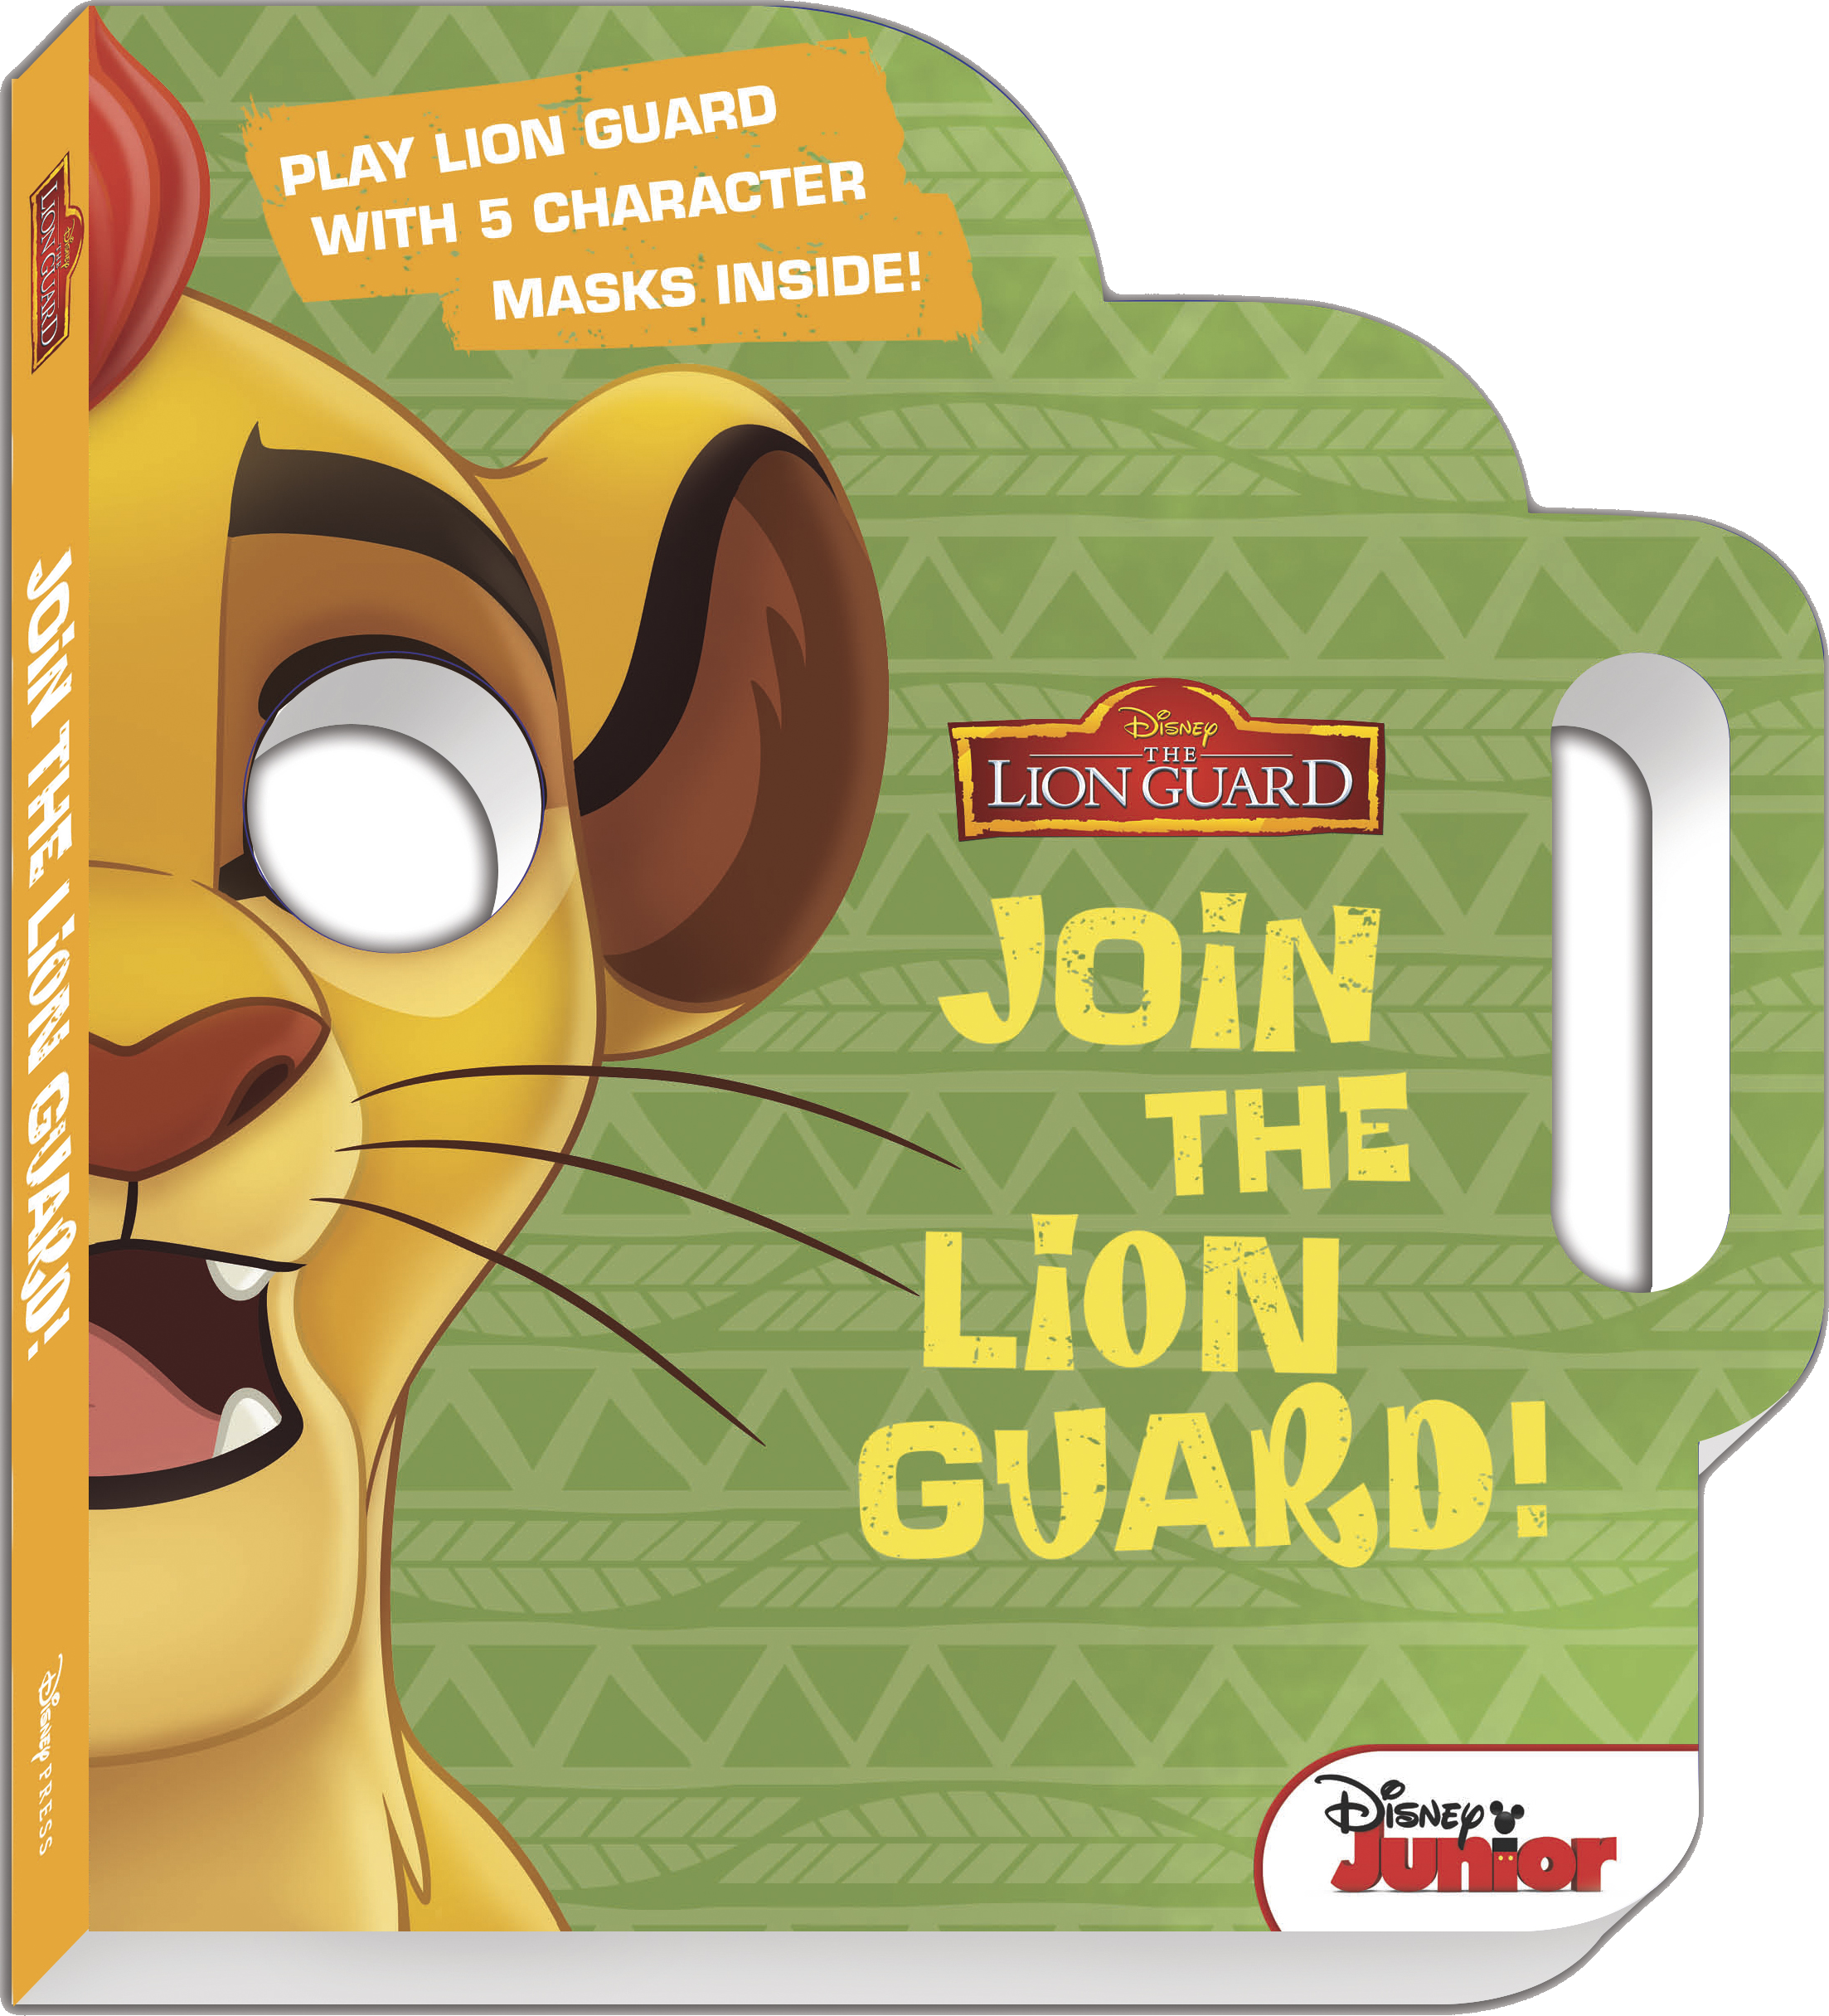 Join the Lion Guard!